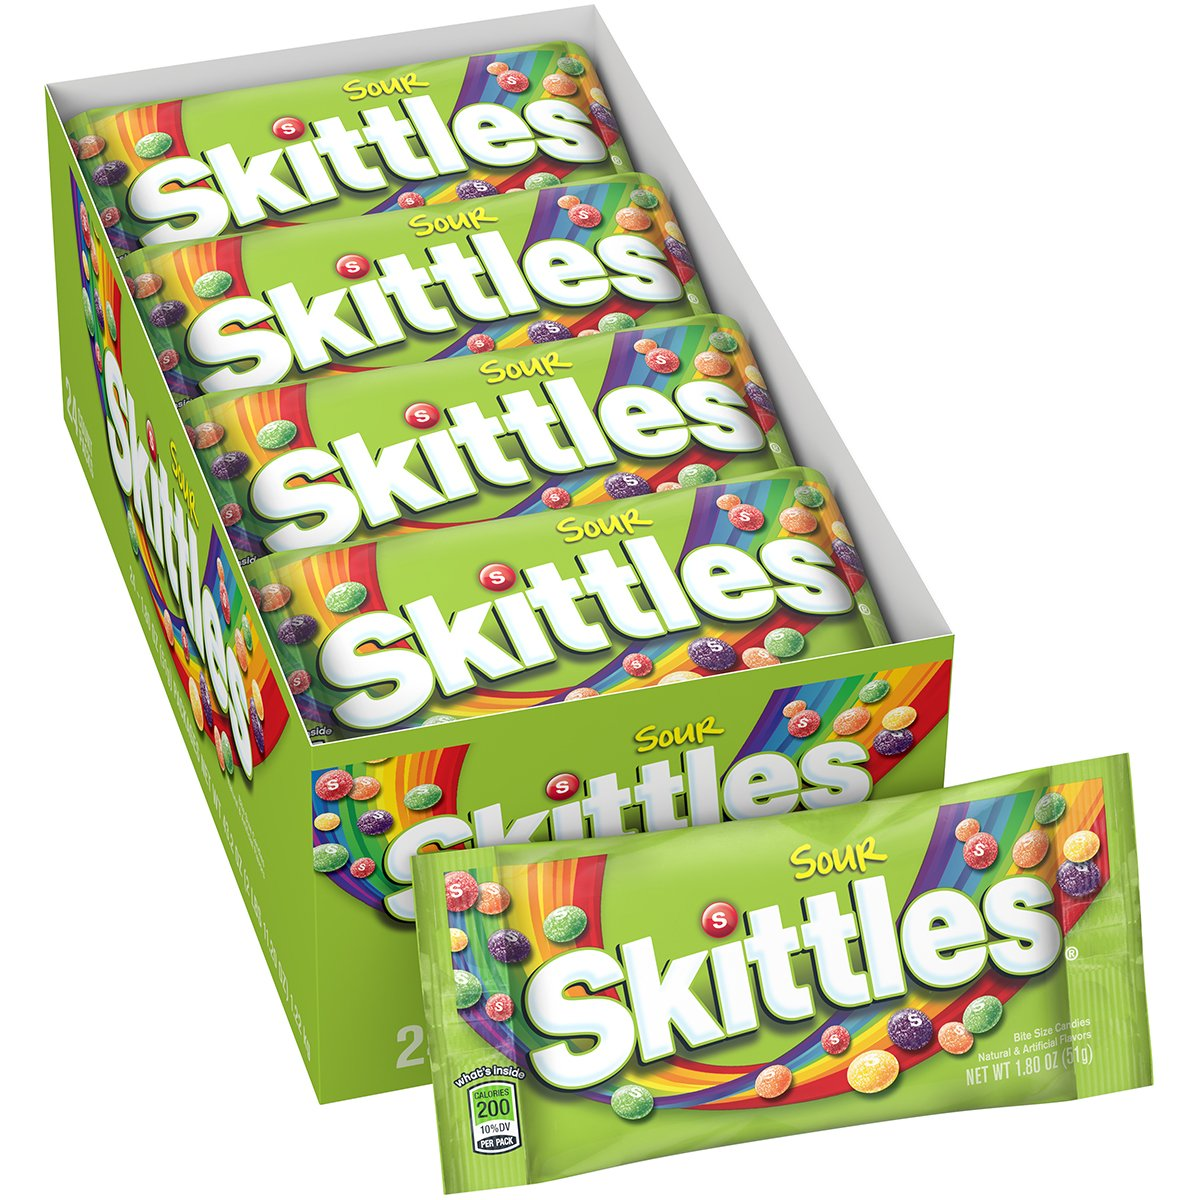 Skittles Sour Candy, 1.8 ounce (24 Single Packs) by Skittles